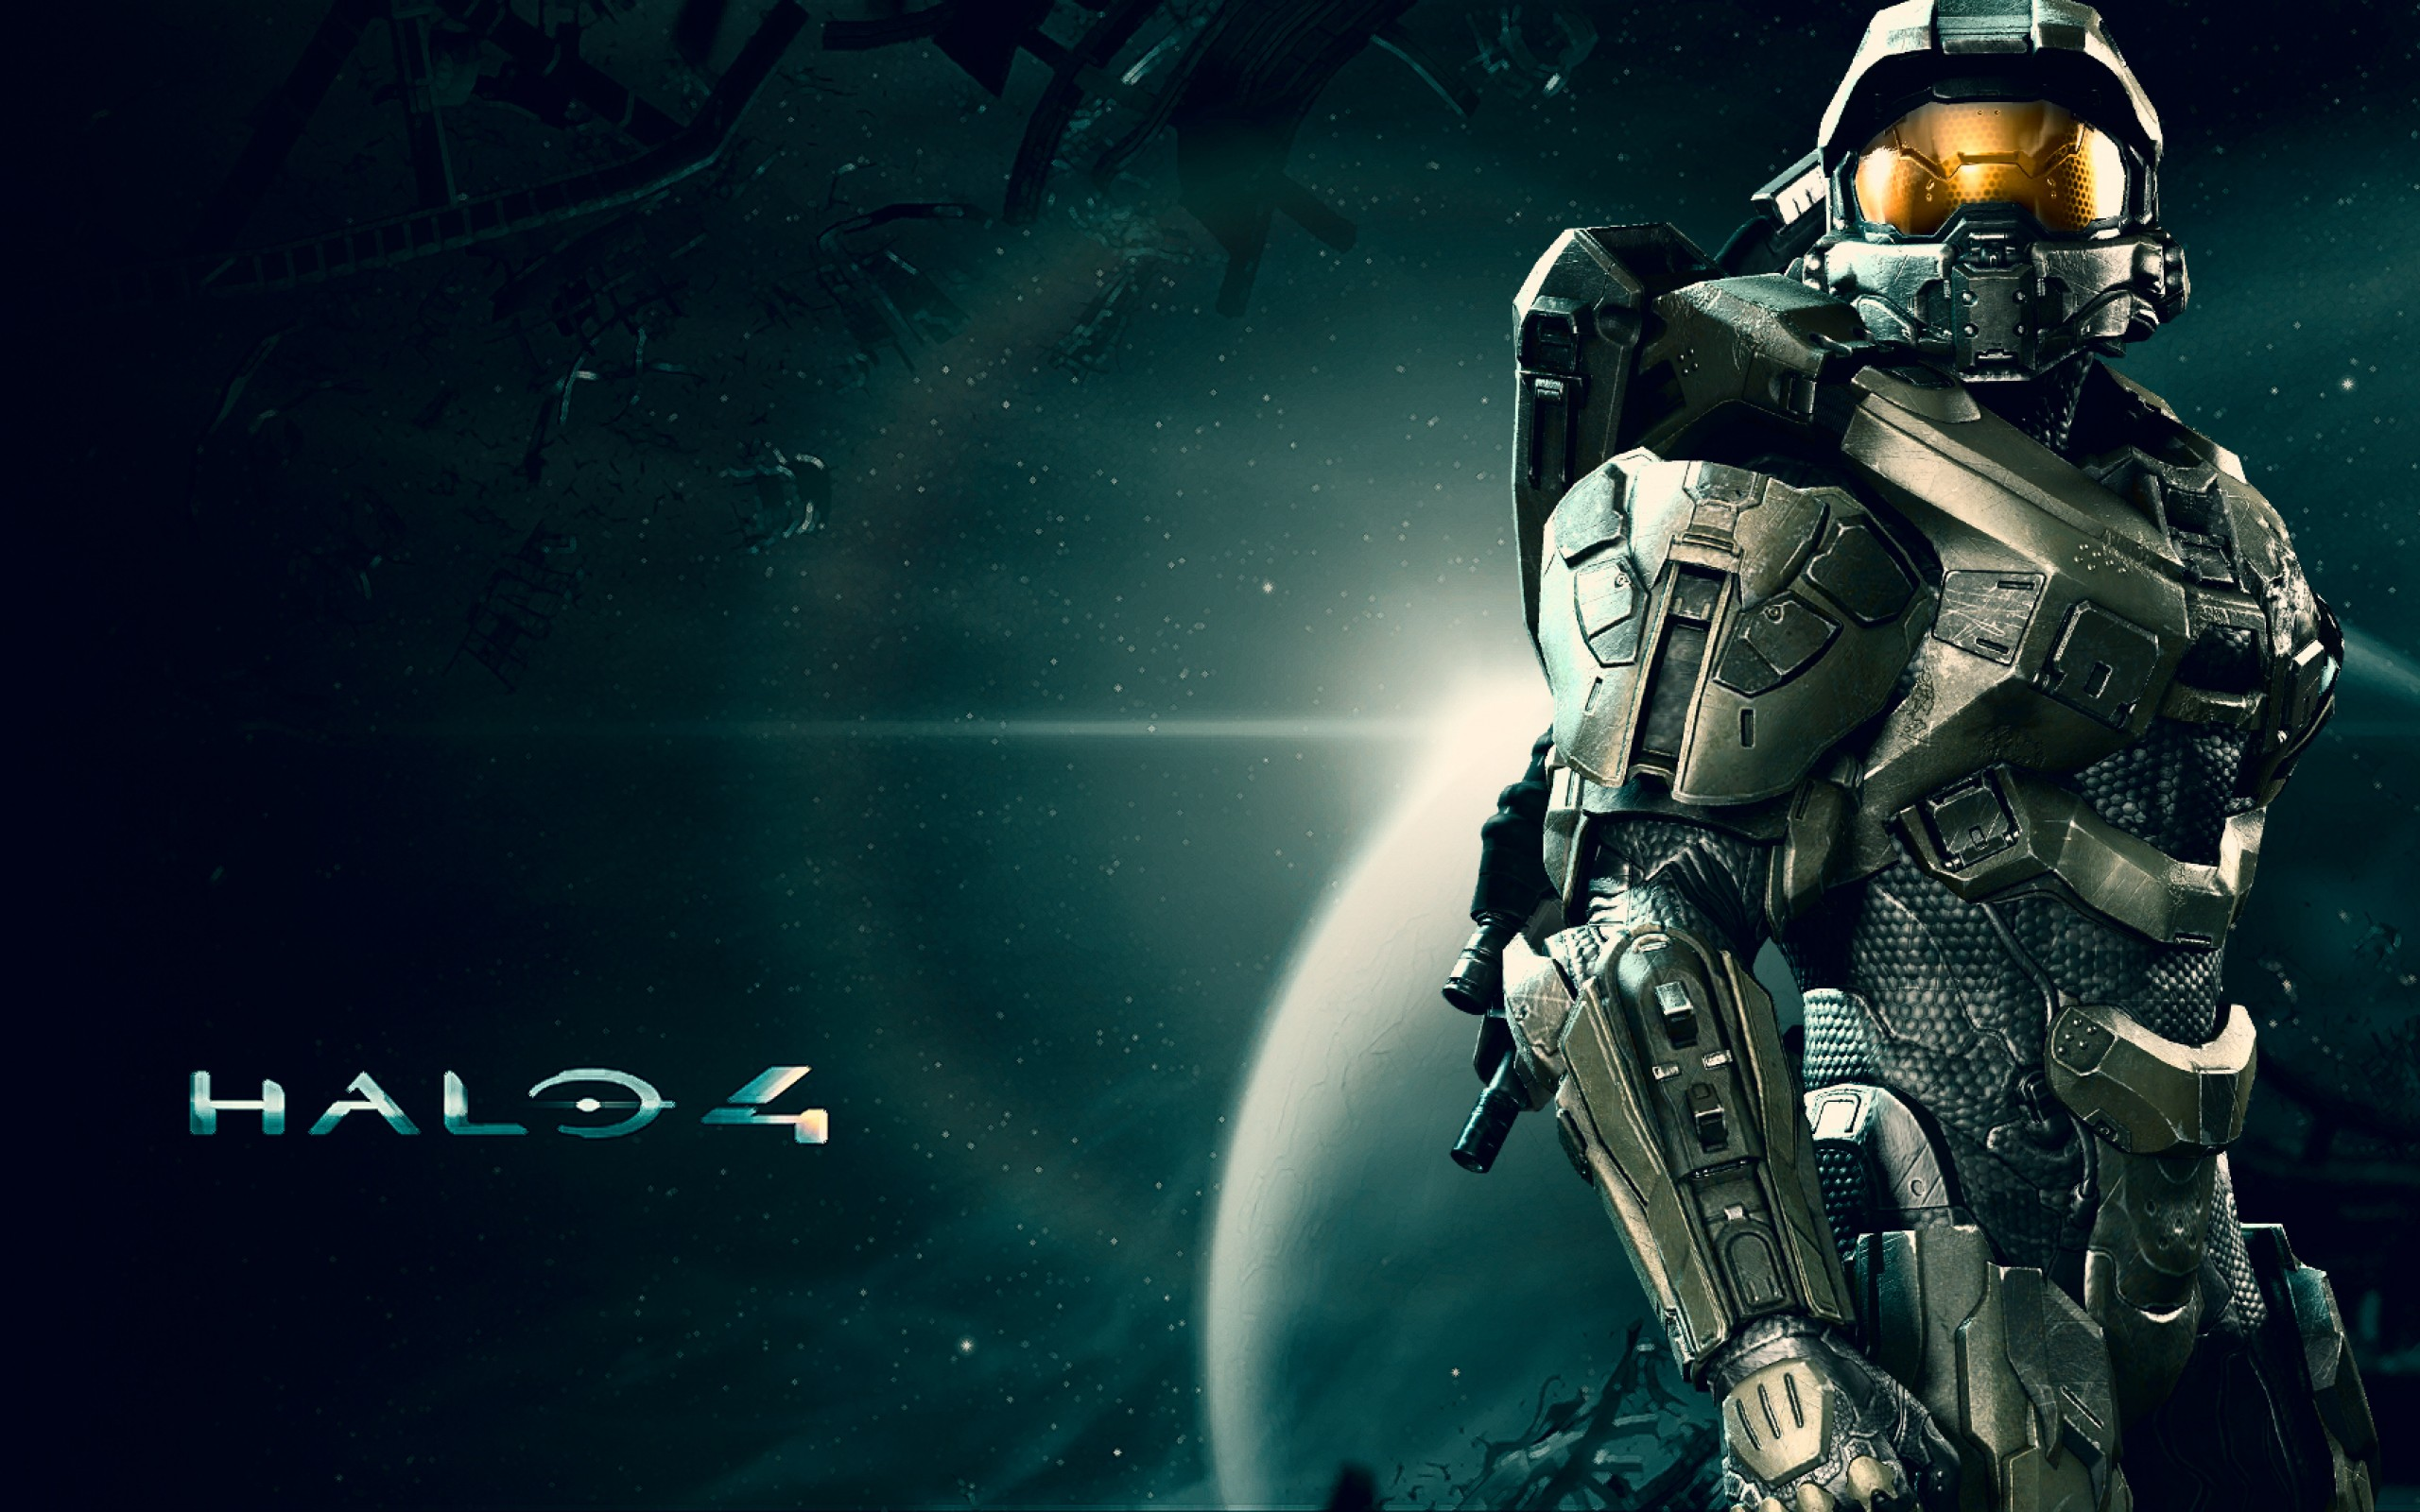 Fonds dcran Halo 5 tous les wallpapers Halo 5 2560x1600